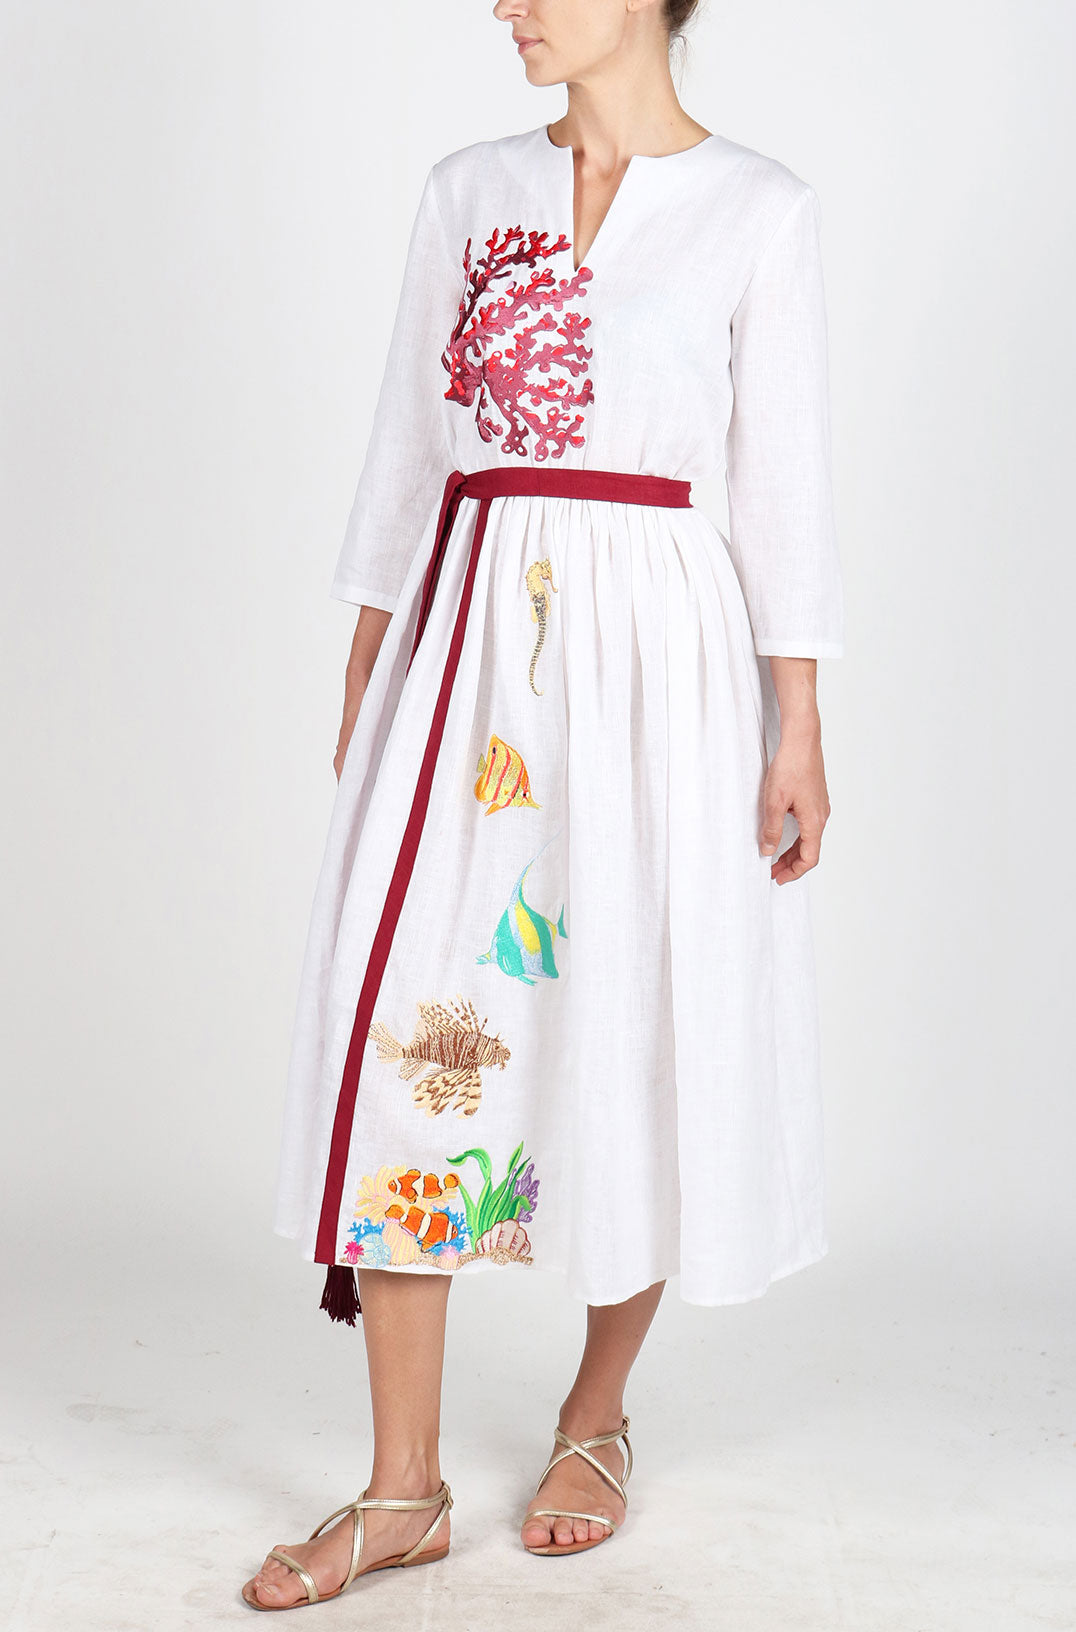 Fanm Mon KORAY White Linen Tropical Coral Reefs Embroidery Vyshyvanka MIDI Dress size XS-XXL